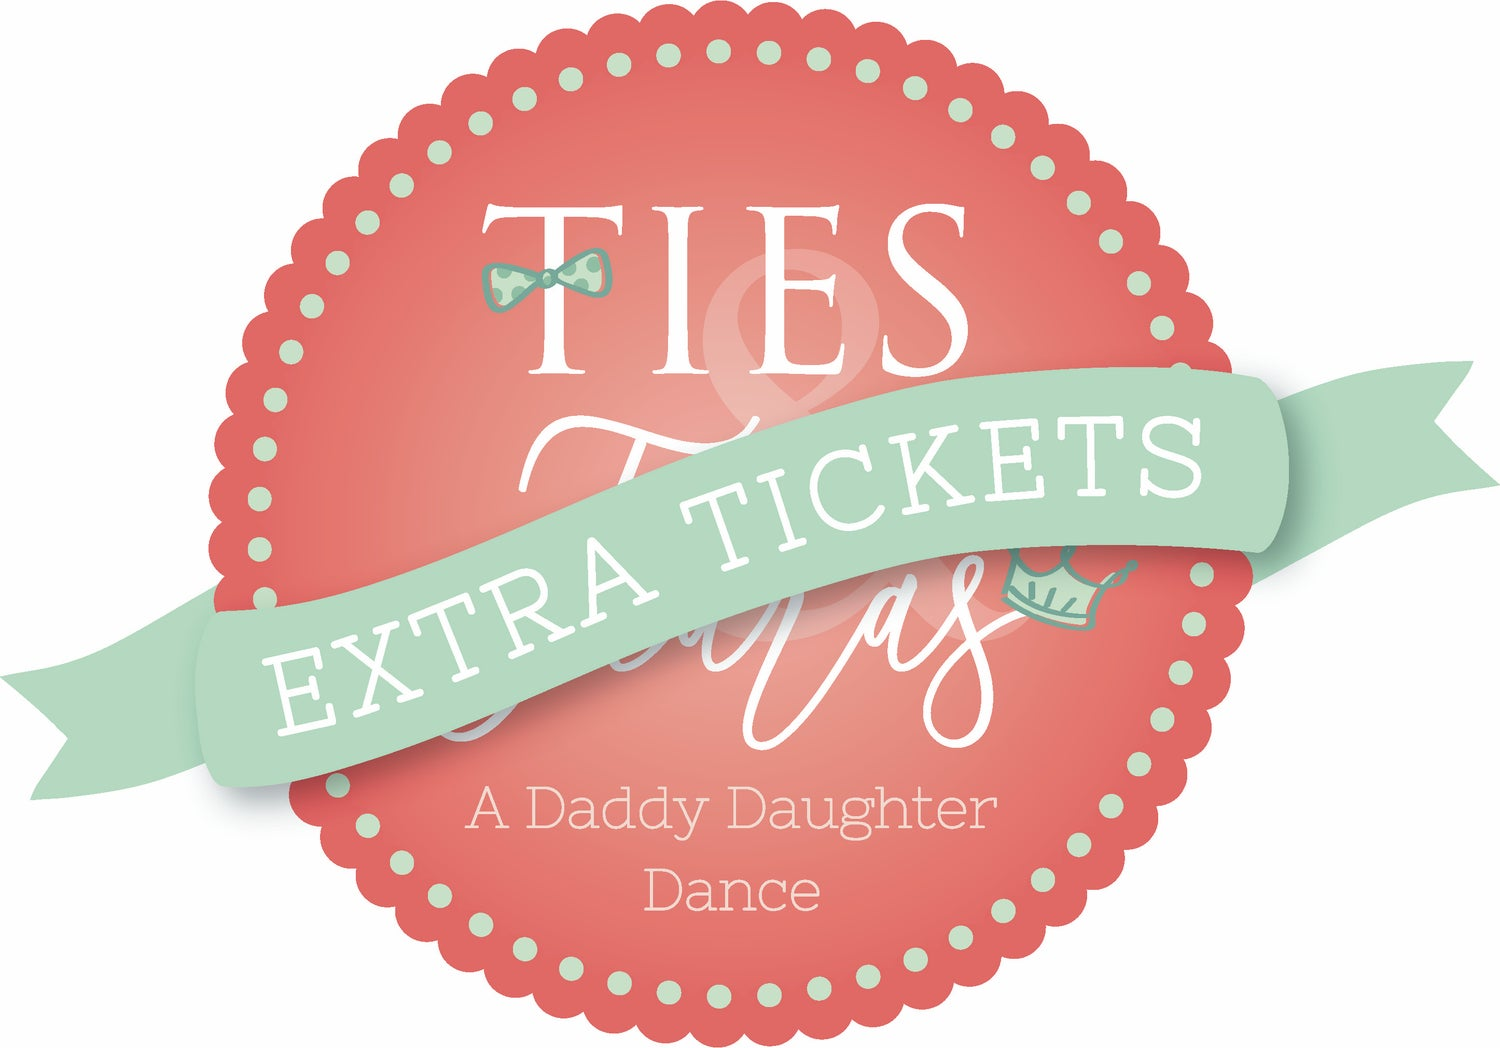 Image of Tickets for more daughter(s)